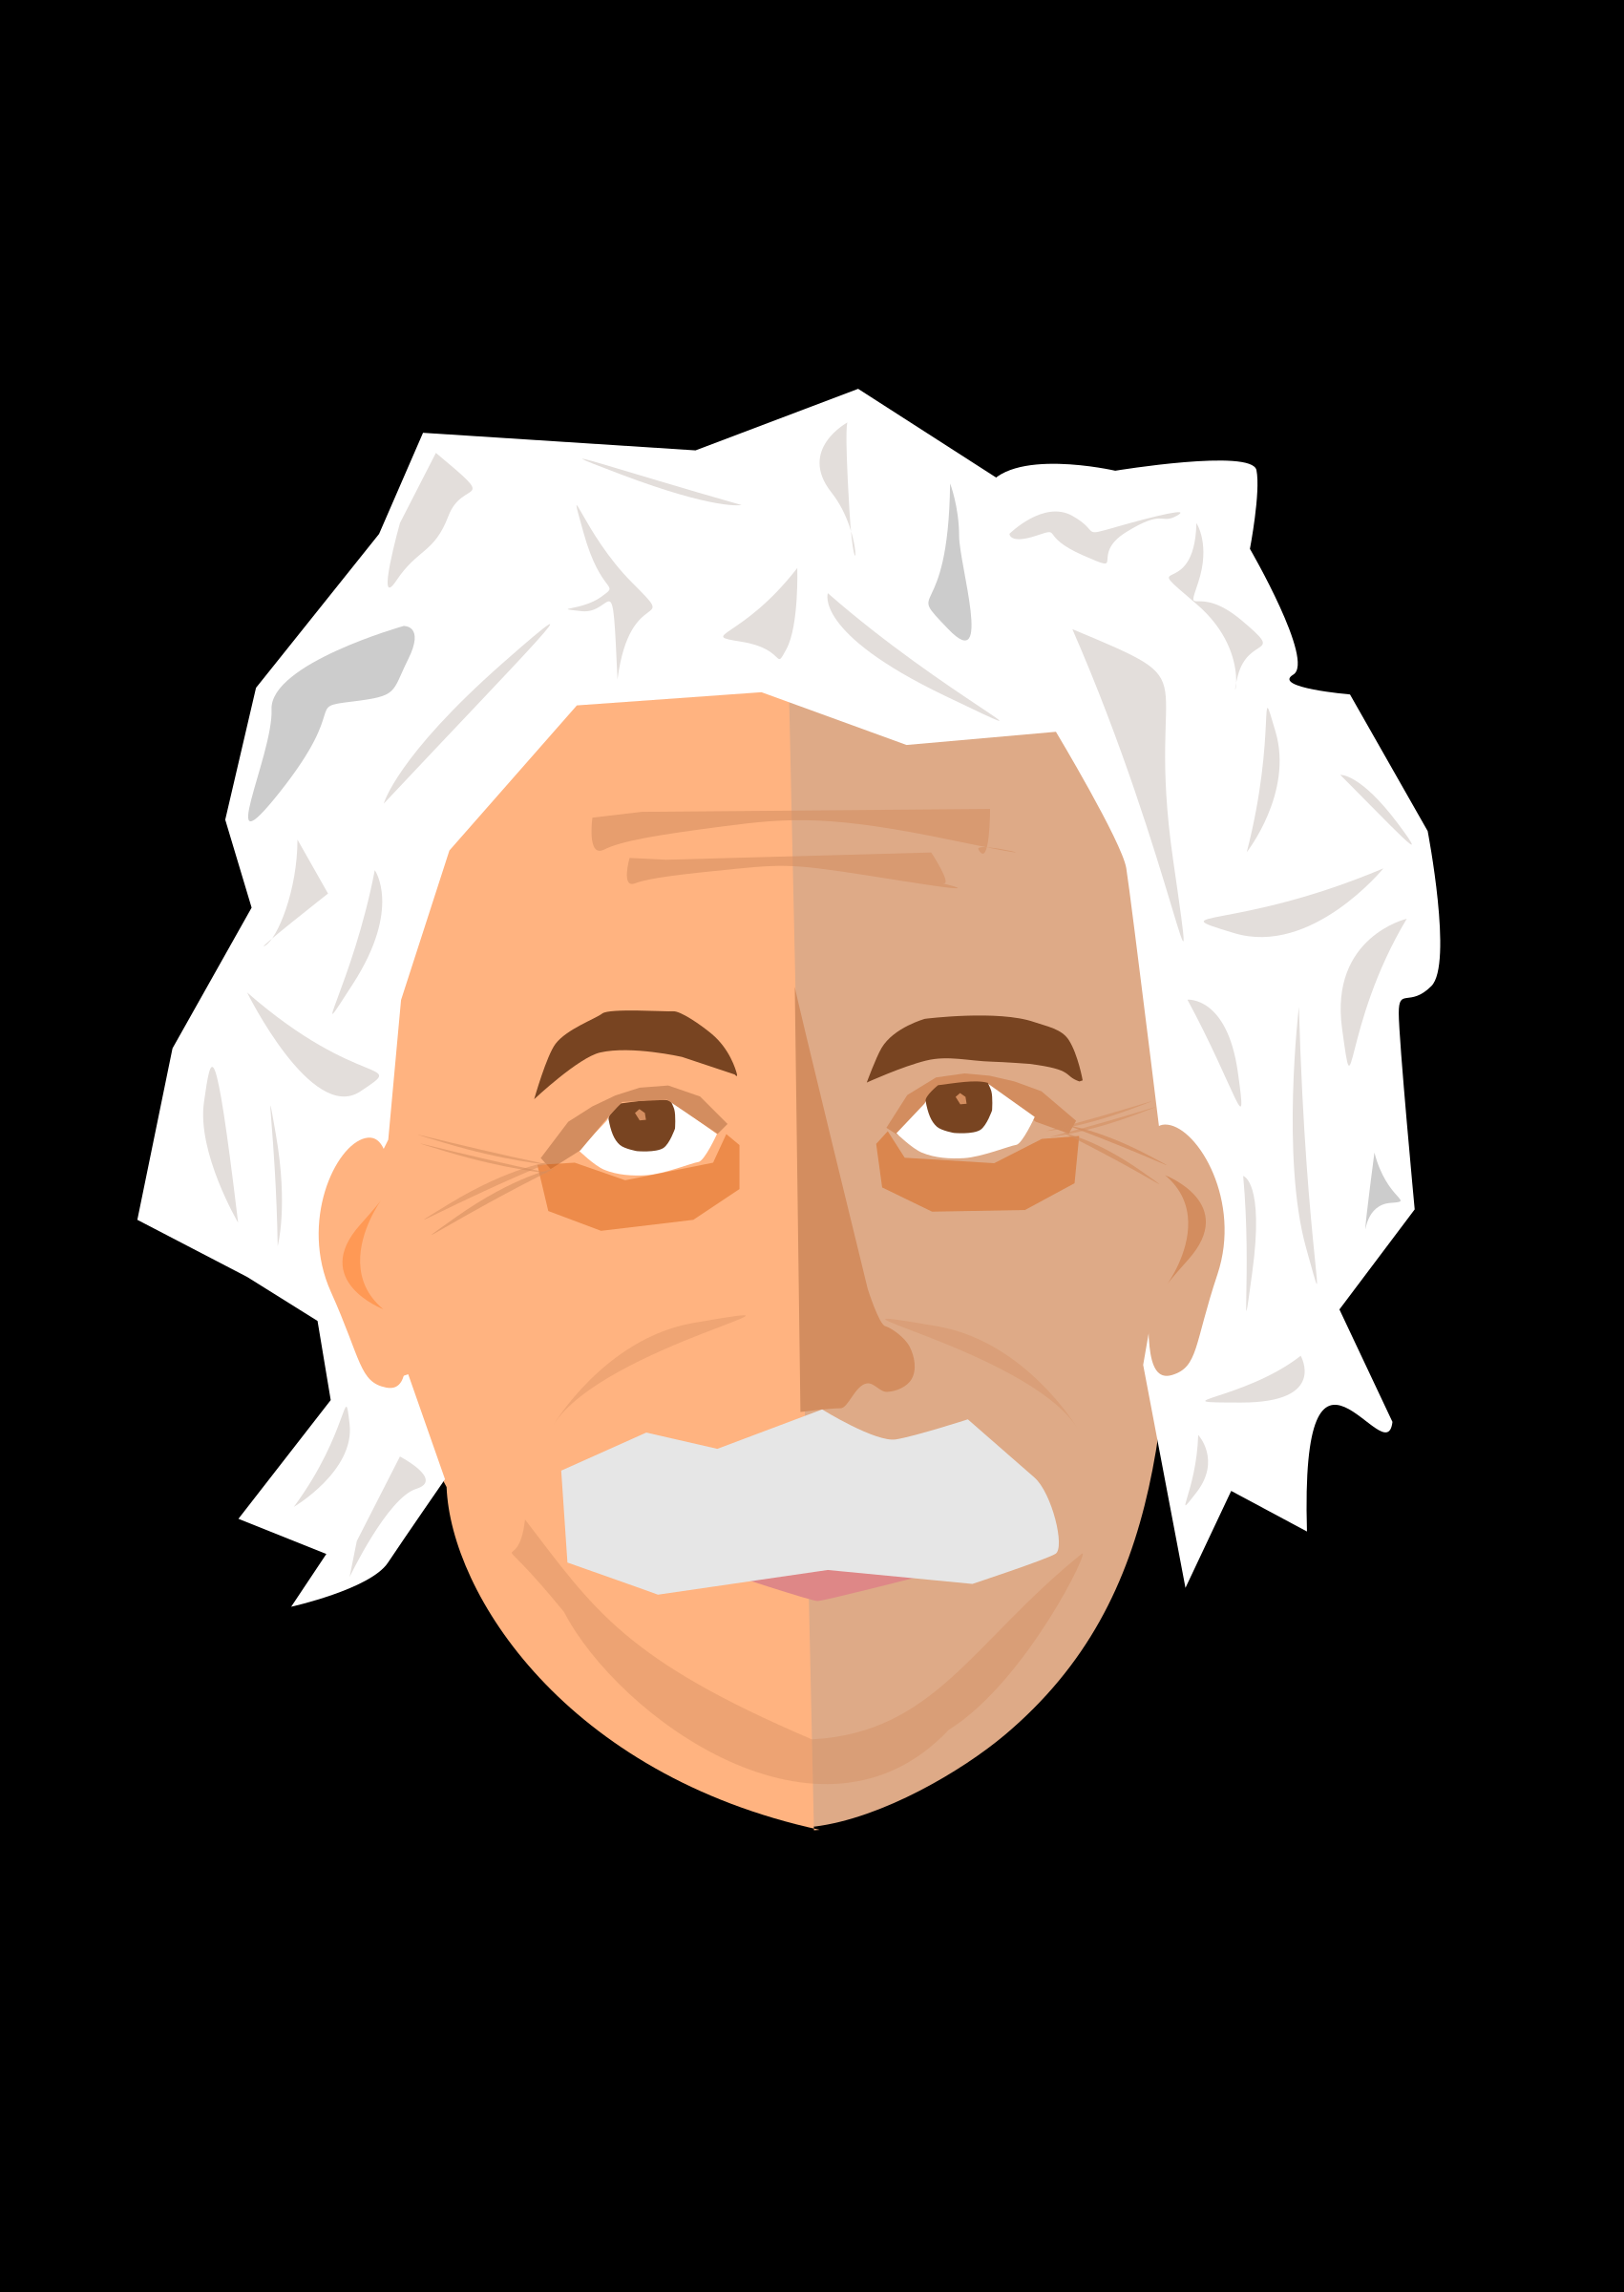 Albert Einstein by logoscambodia